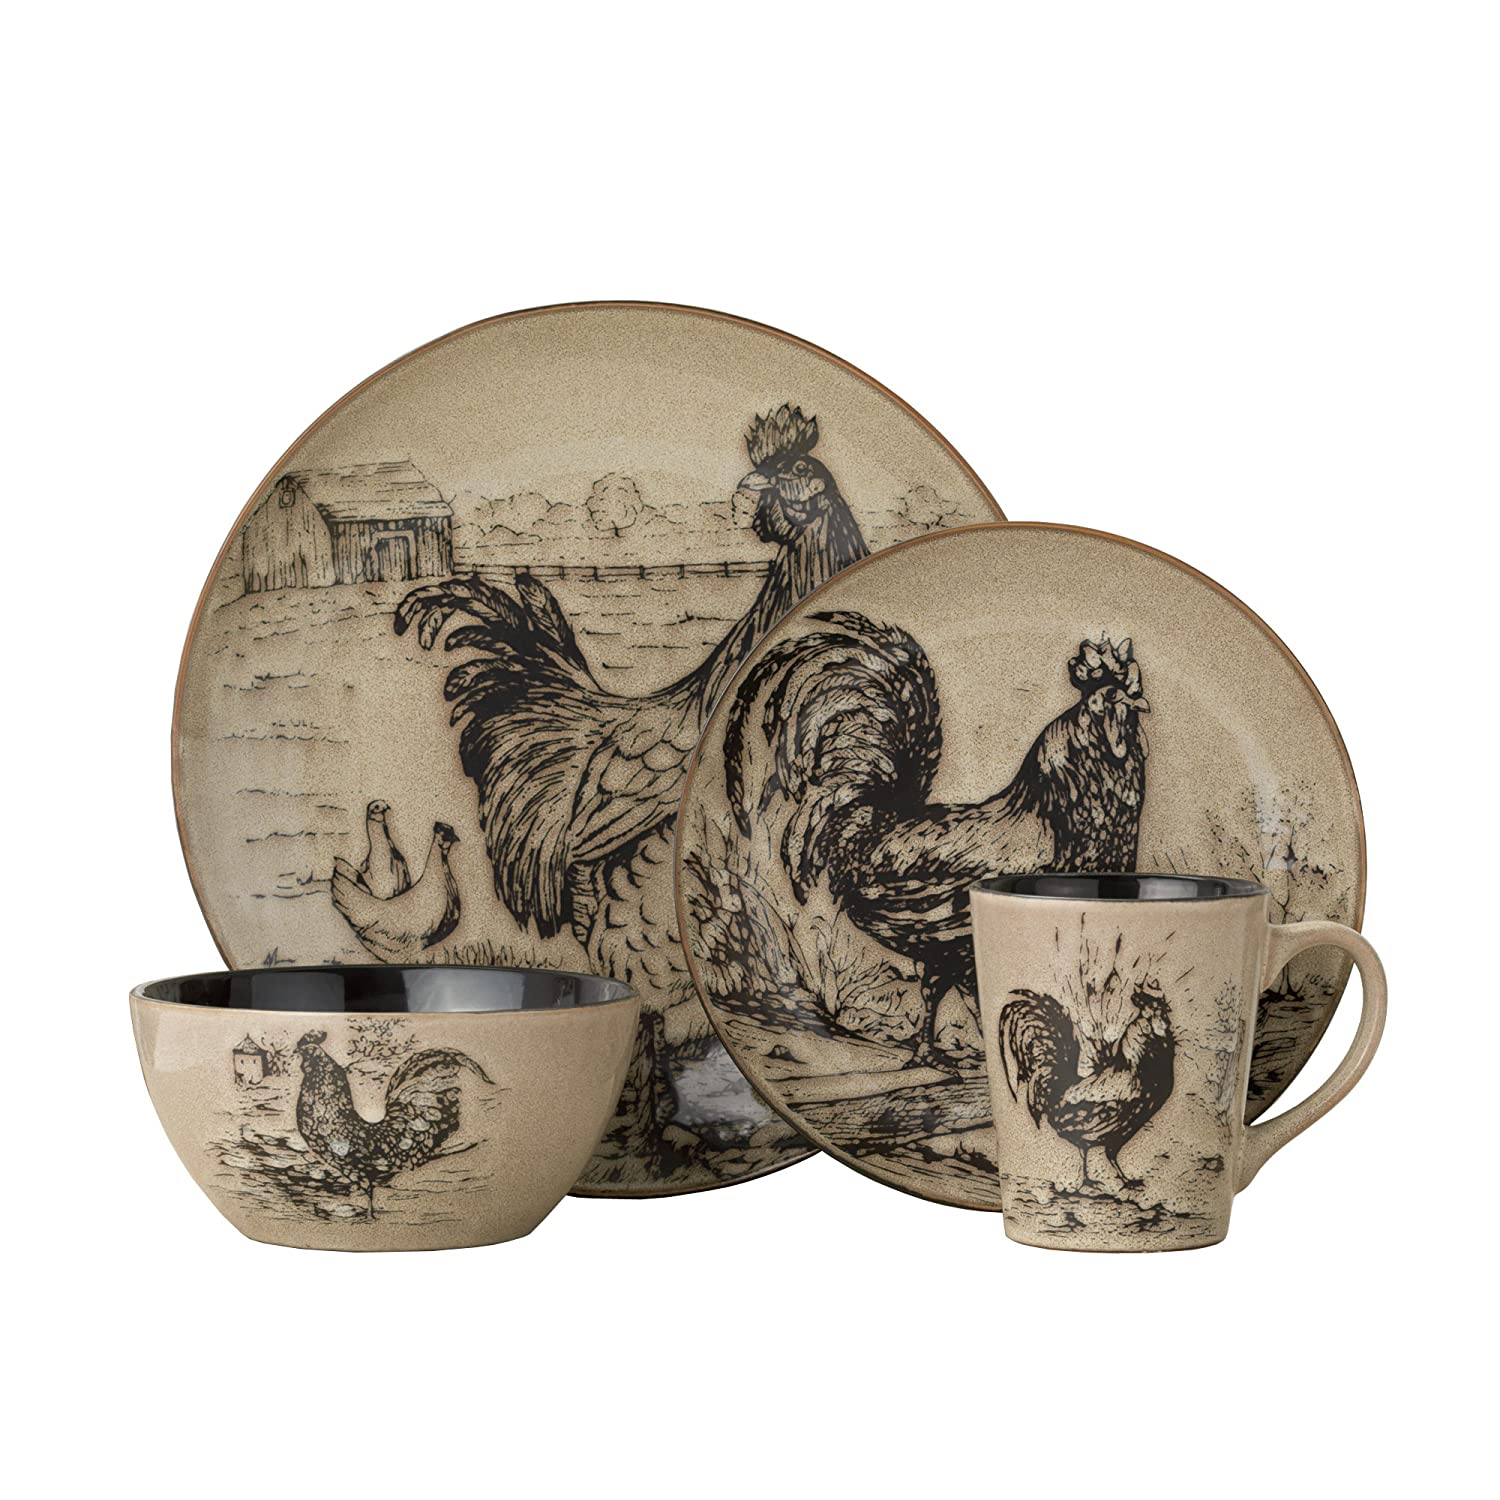 Amazon.com | Pfaltzgraff Homespun Rooster 16-Piece Dinnerware Set Service for 4 Dinnerware Sets  sc 1 st  Amazon.com & Amazon.com | Pfaltzgraff Homespun Rooster 16-Piece Dinnerware Set ...